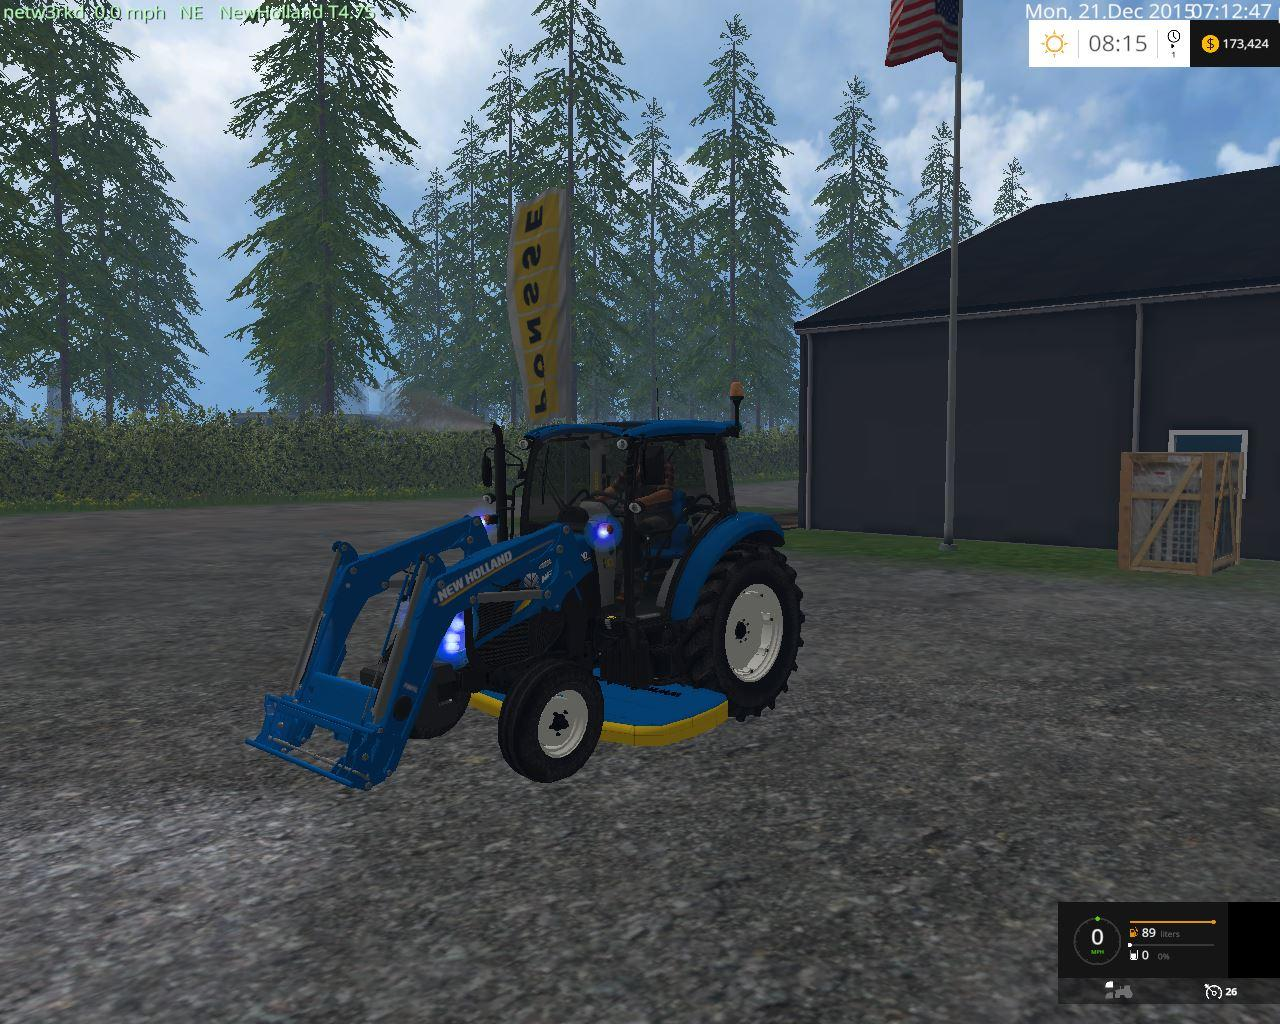 NEW HOLLAND 74 65 2WD V2 • Farming simulator 19, 17, 15 mods